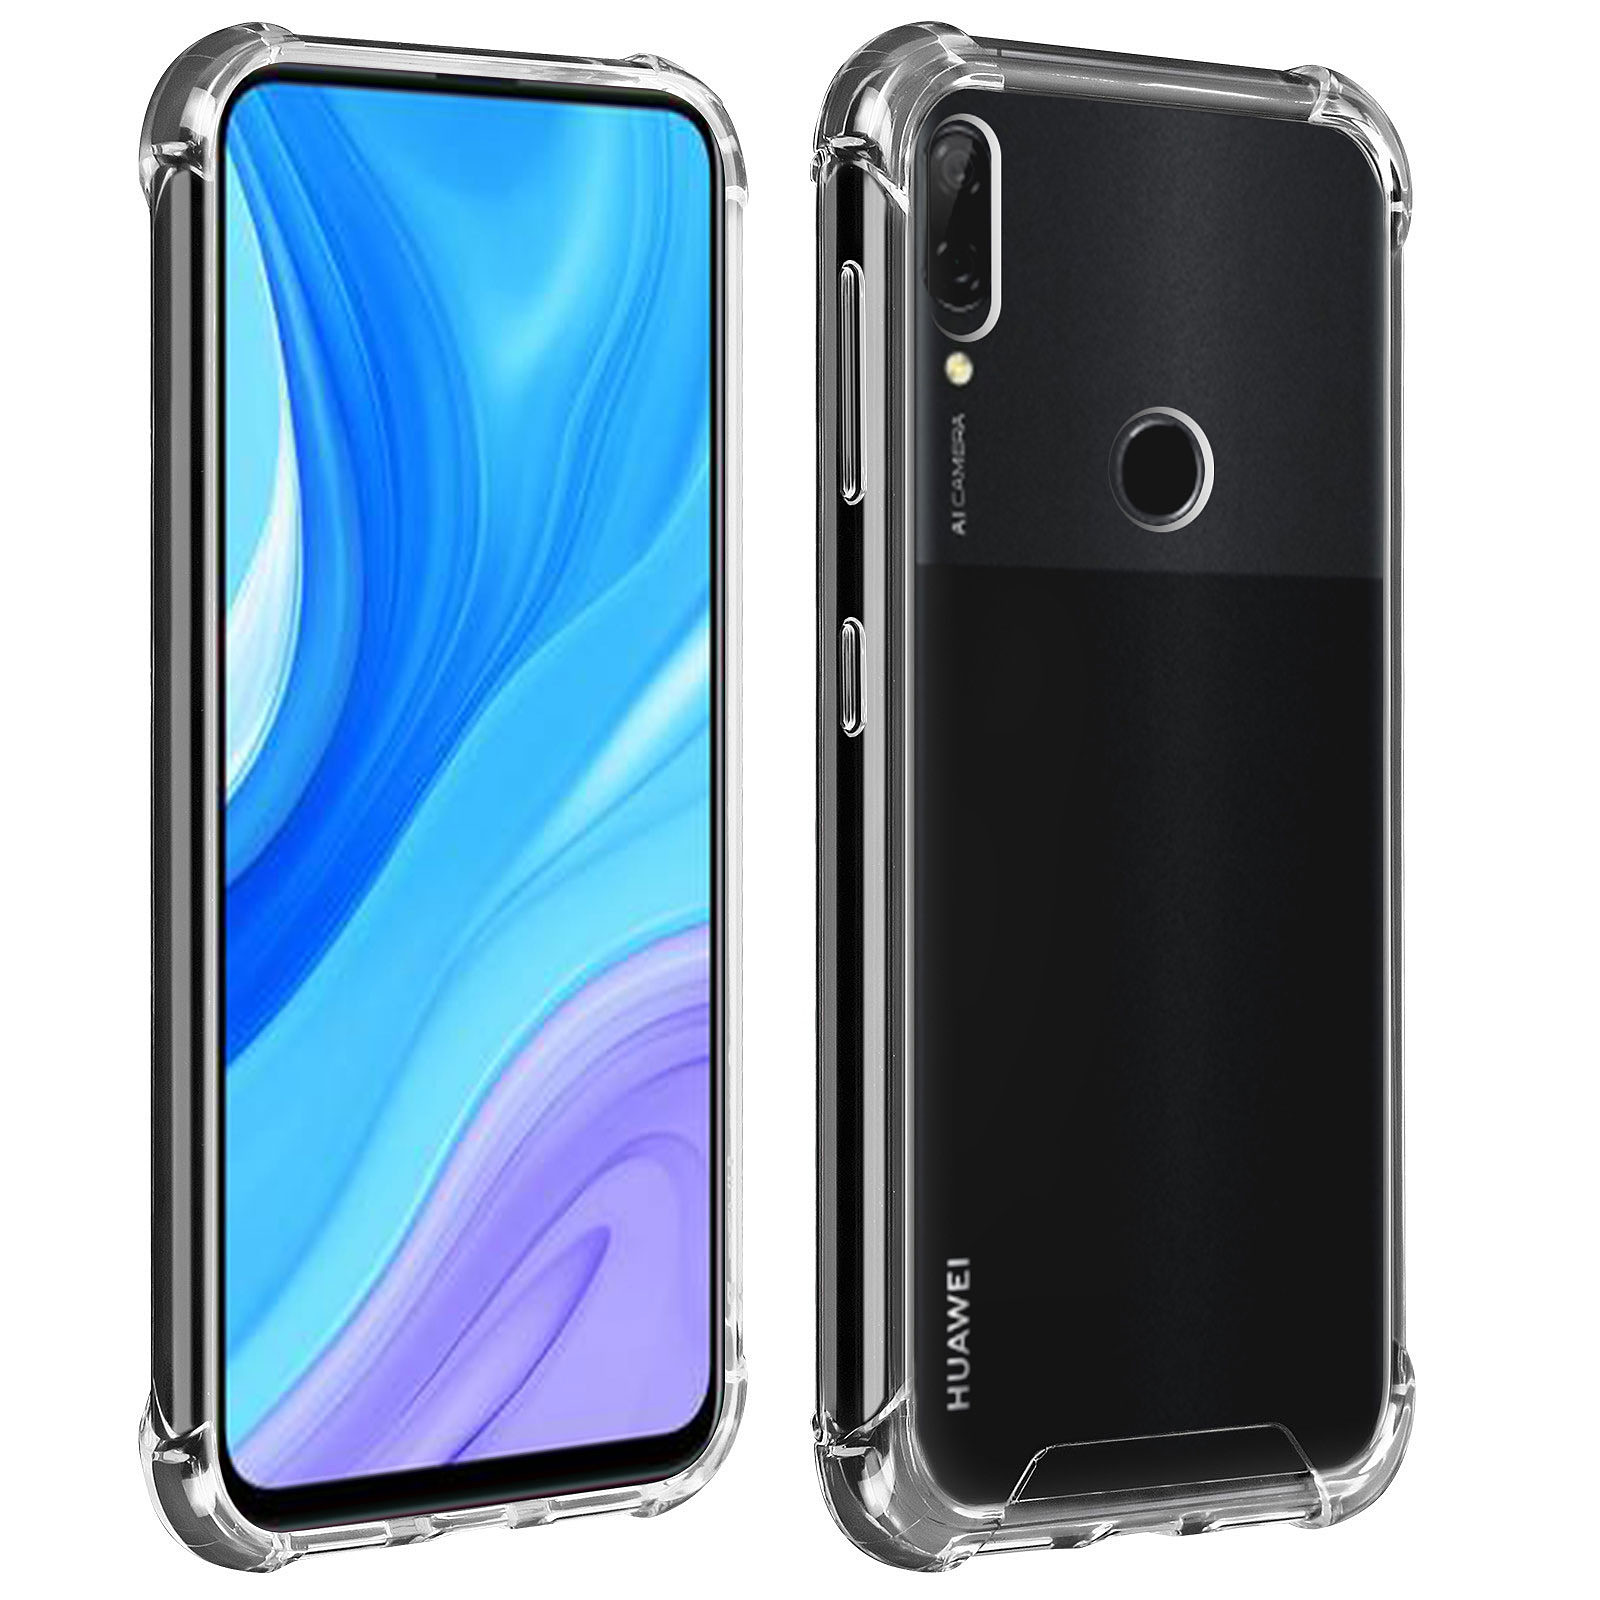 Akashi Coque TPU Angles Renforcés Huawei P Smart Z